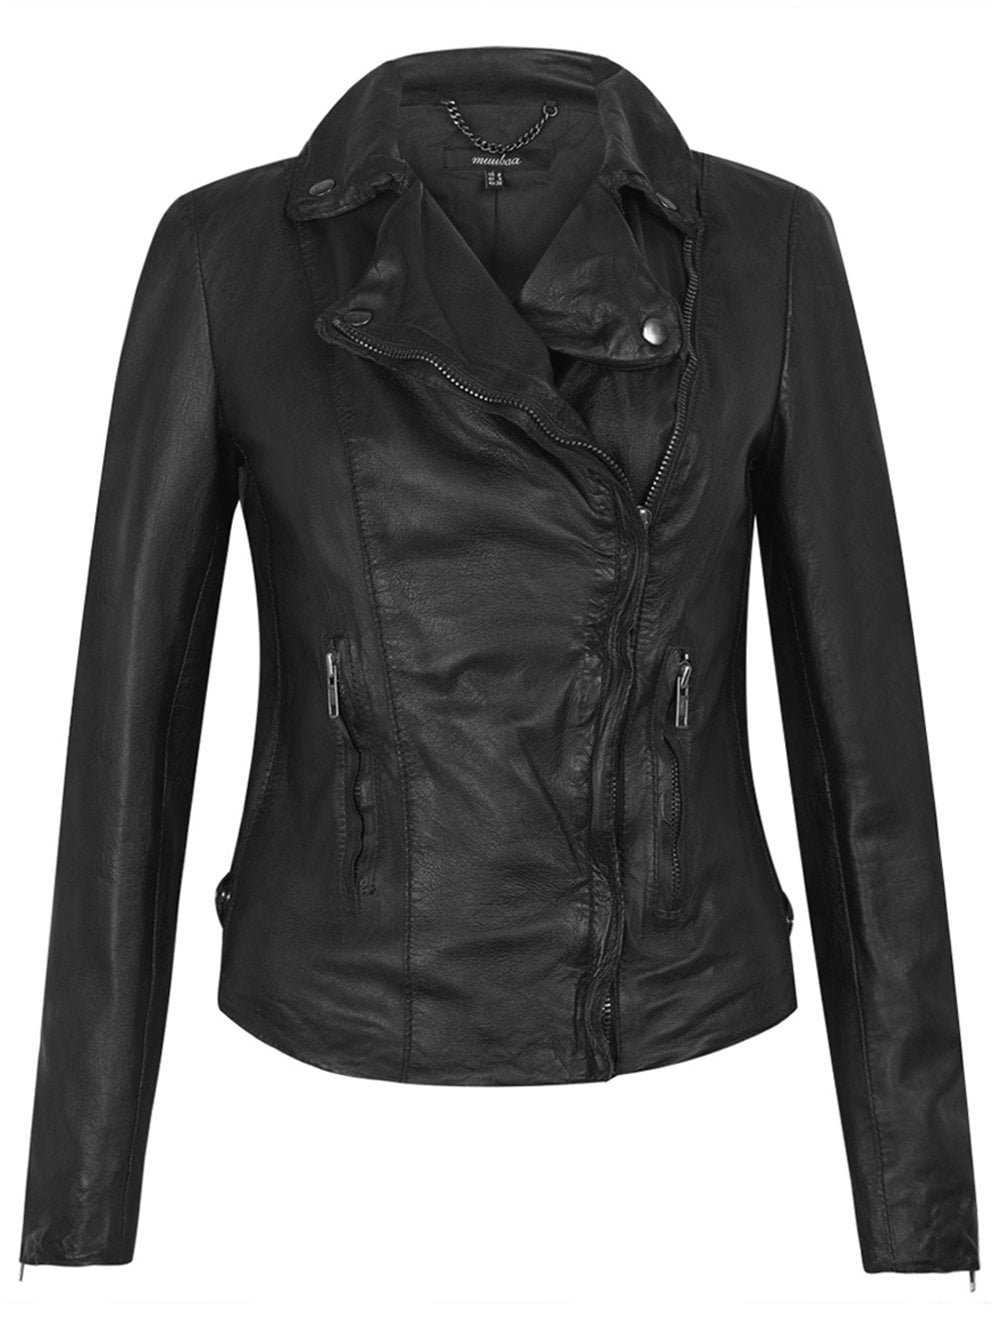 3dc9b41a06669c Muubaa Monteria Black Leather Biker Jacket